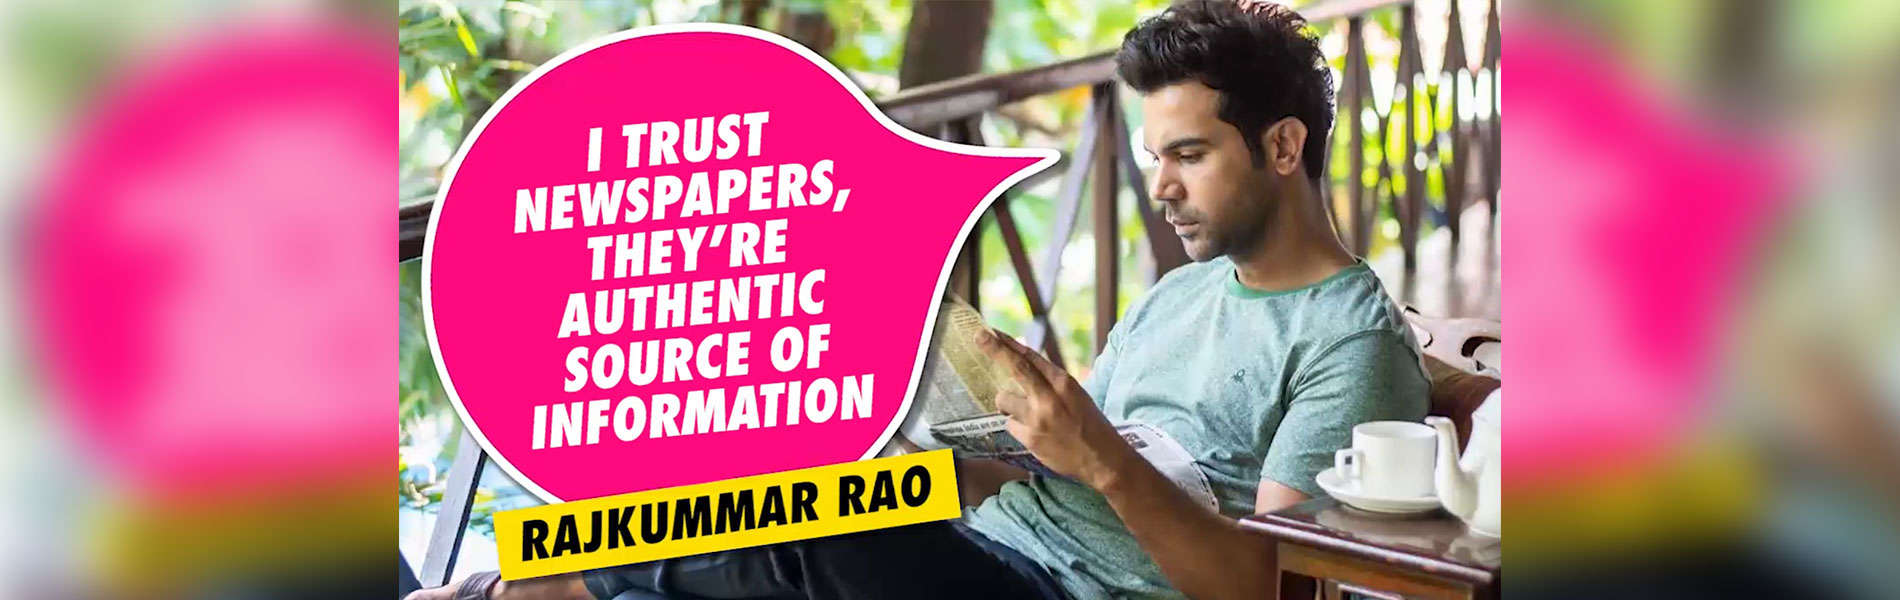 rajkummar-rao-i-trust-newspapers-theyre-authentic-source-of-information